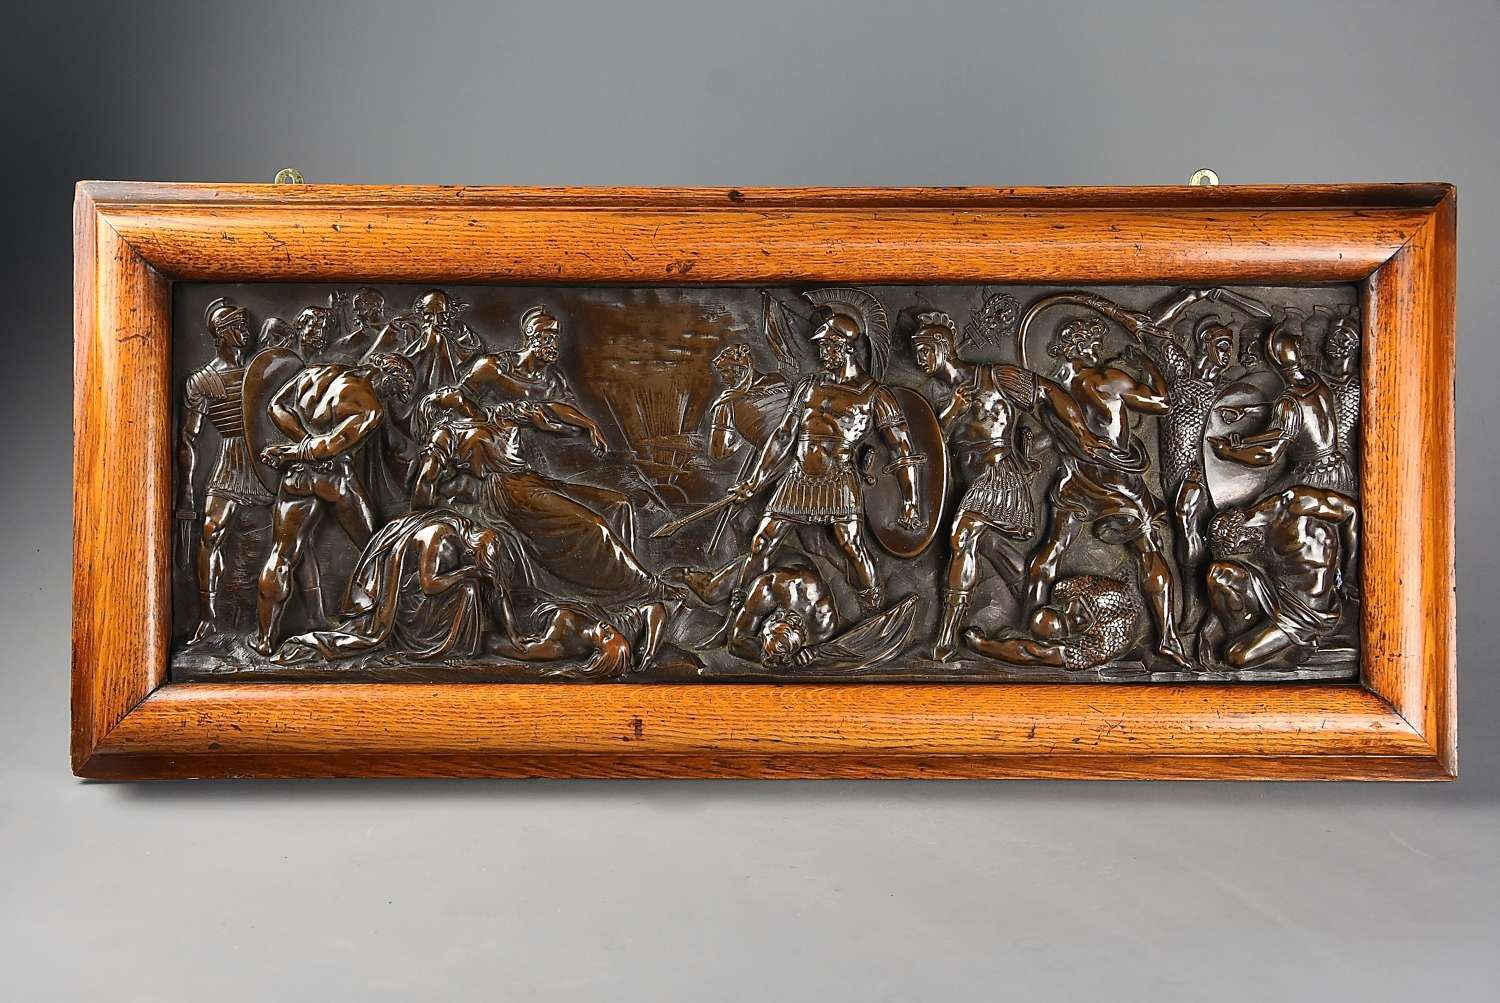 19thc fine quality framed bronzed plaque of a Classical battle scene